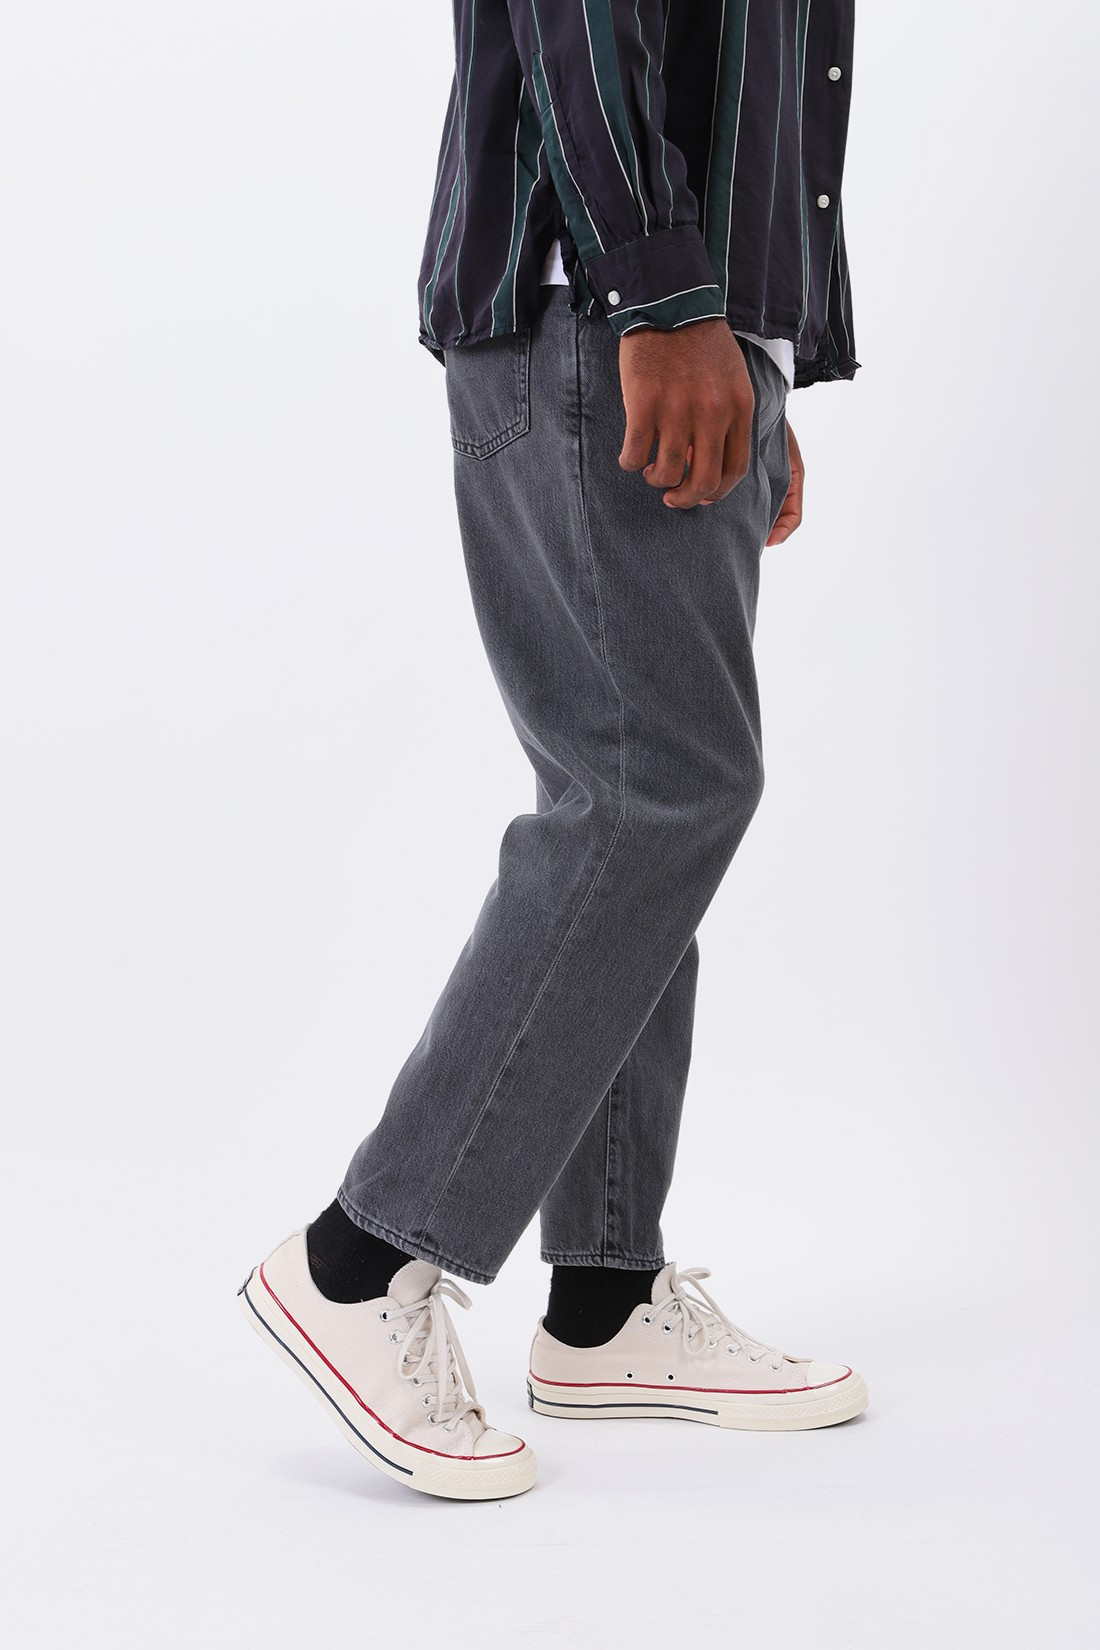 EDWIN / Balder pant kingston denim Black stone bleach